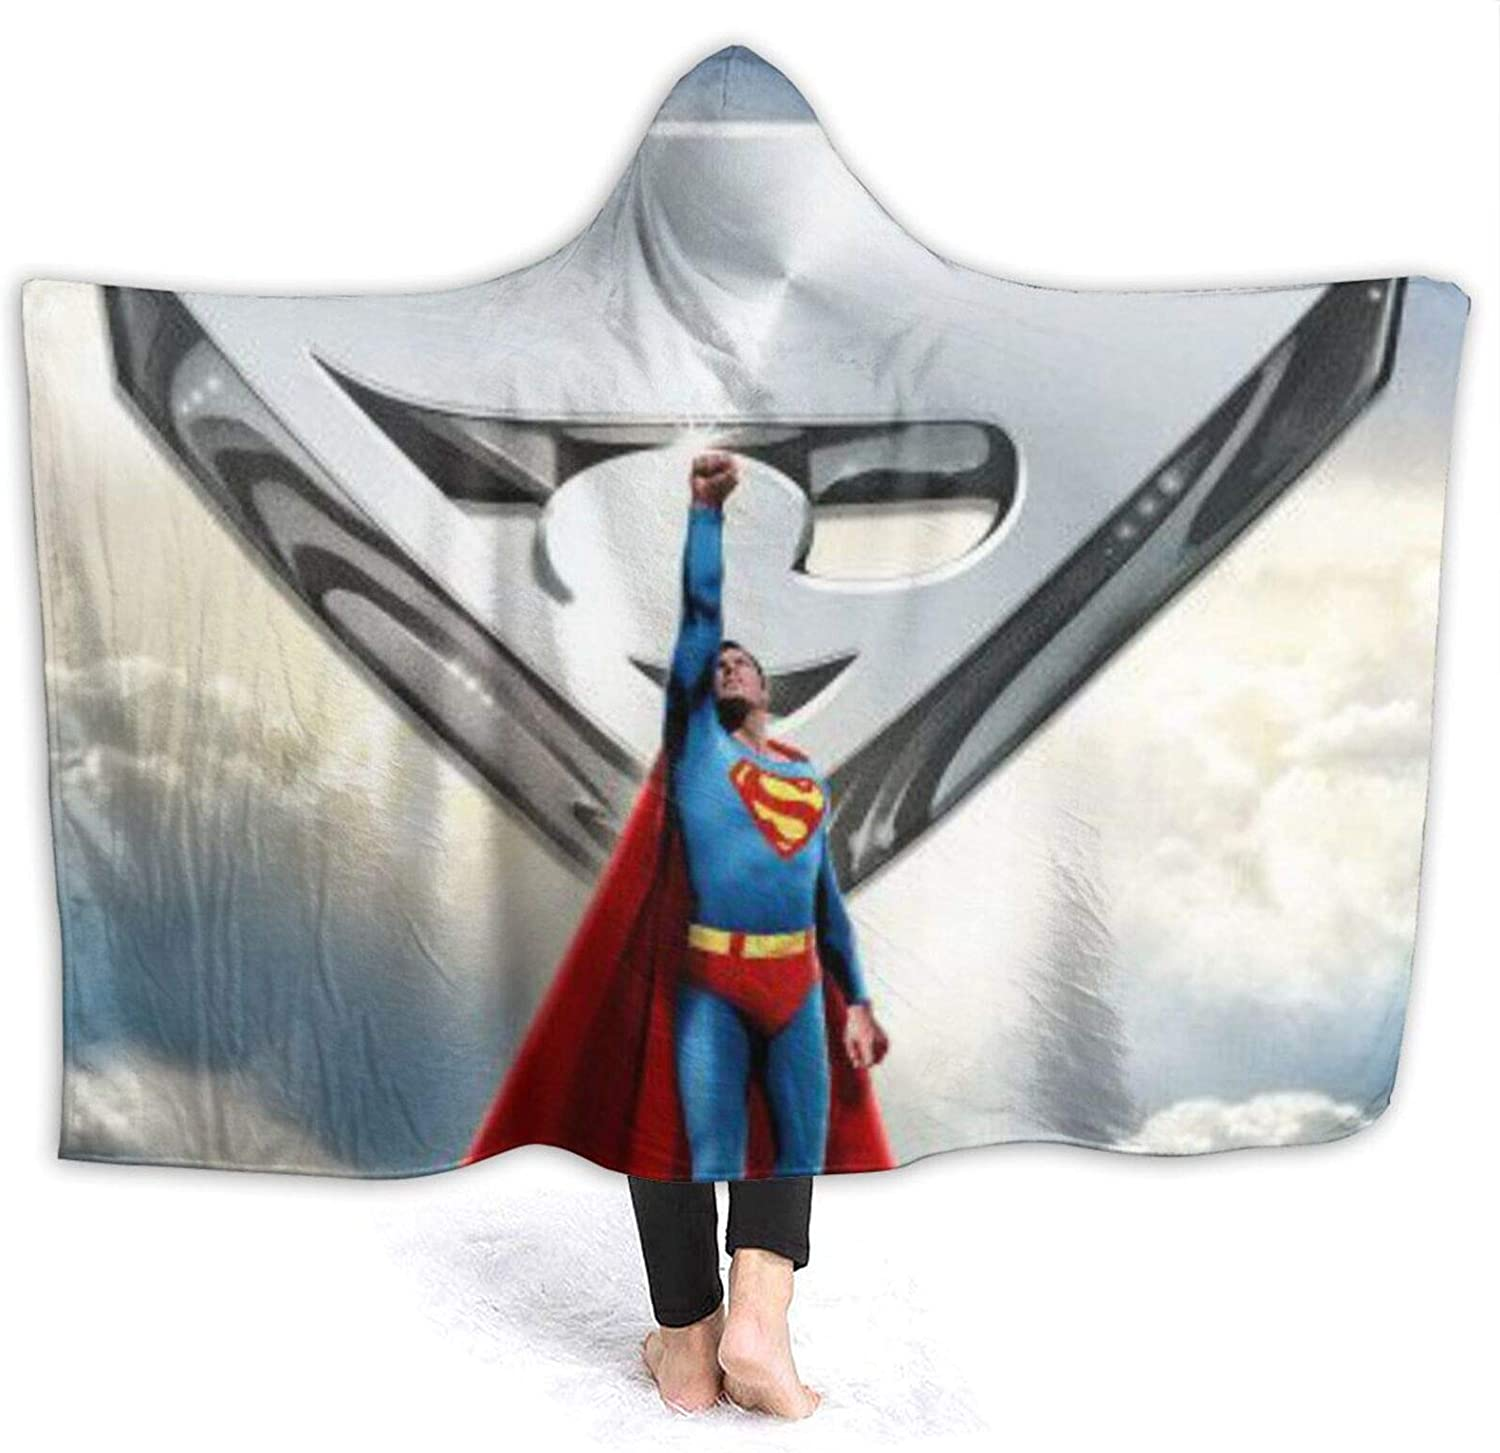 S-Uperman Fantasy Hooded Blanket Adult Don't miss the Trust campaign Four Kids Seasons Soft Wa